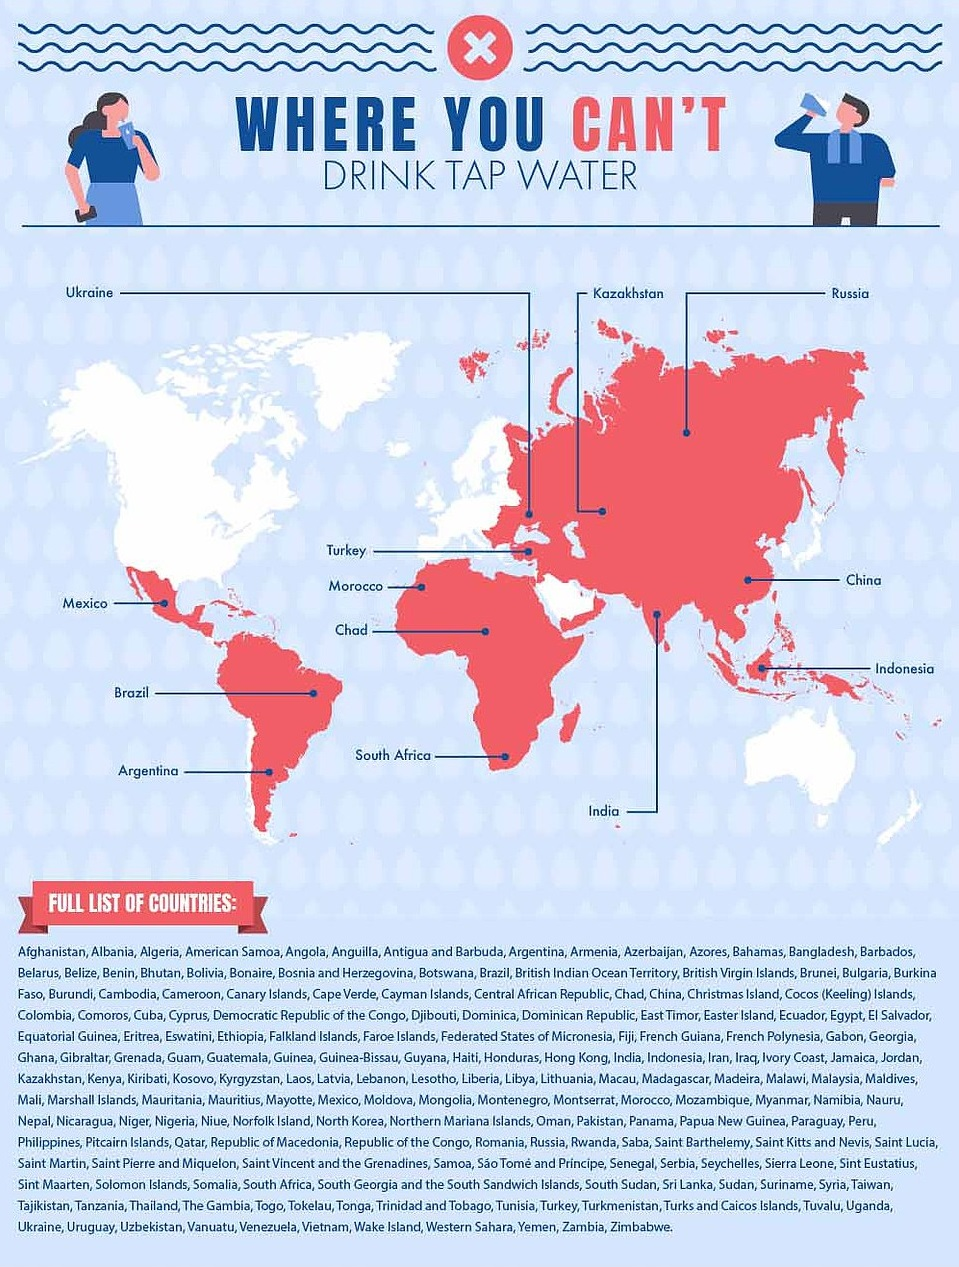 Kazakhstan enters the list of countries where drink tap water is not on map of southeast asia, map of indian ocean, map of uzbekistan, map of sri lanka, map of usa, map of nepal, map of moldova, map of canada, map of macau, map of ethiopia, map of belarus, map of northern asia, map of central asia, map of dagestan, map of azerbaijan, map of korea, map of aral sea, map of pakistan, map of kyrgyzstan, map of finland,